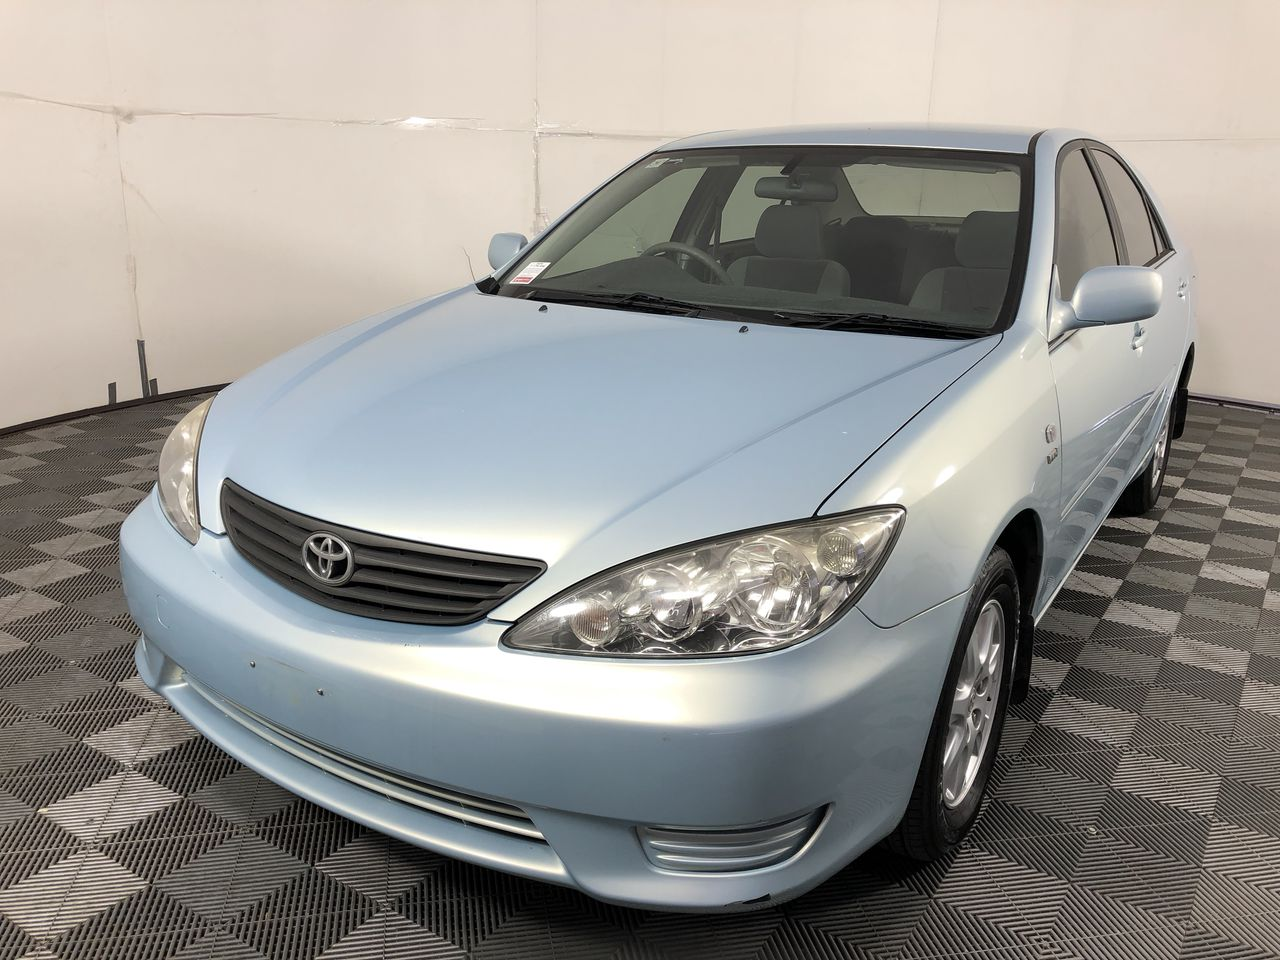 2006 Toyota Camry Altise ACV36R Automatic Sedan